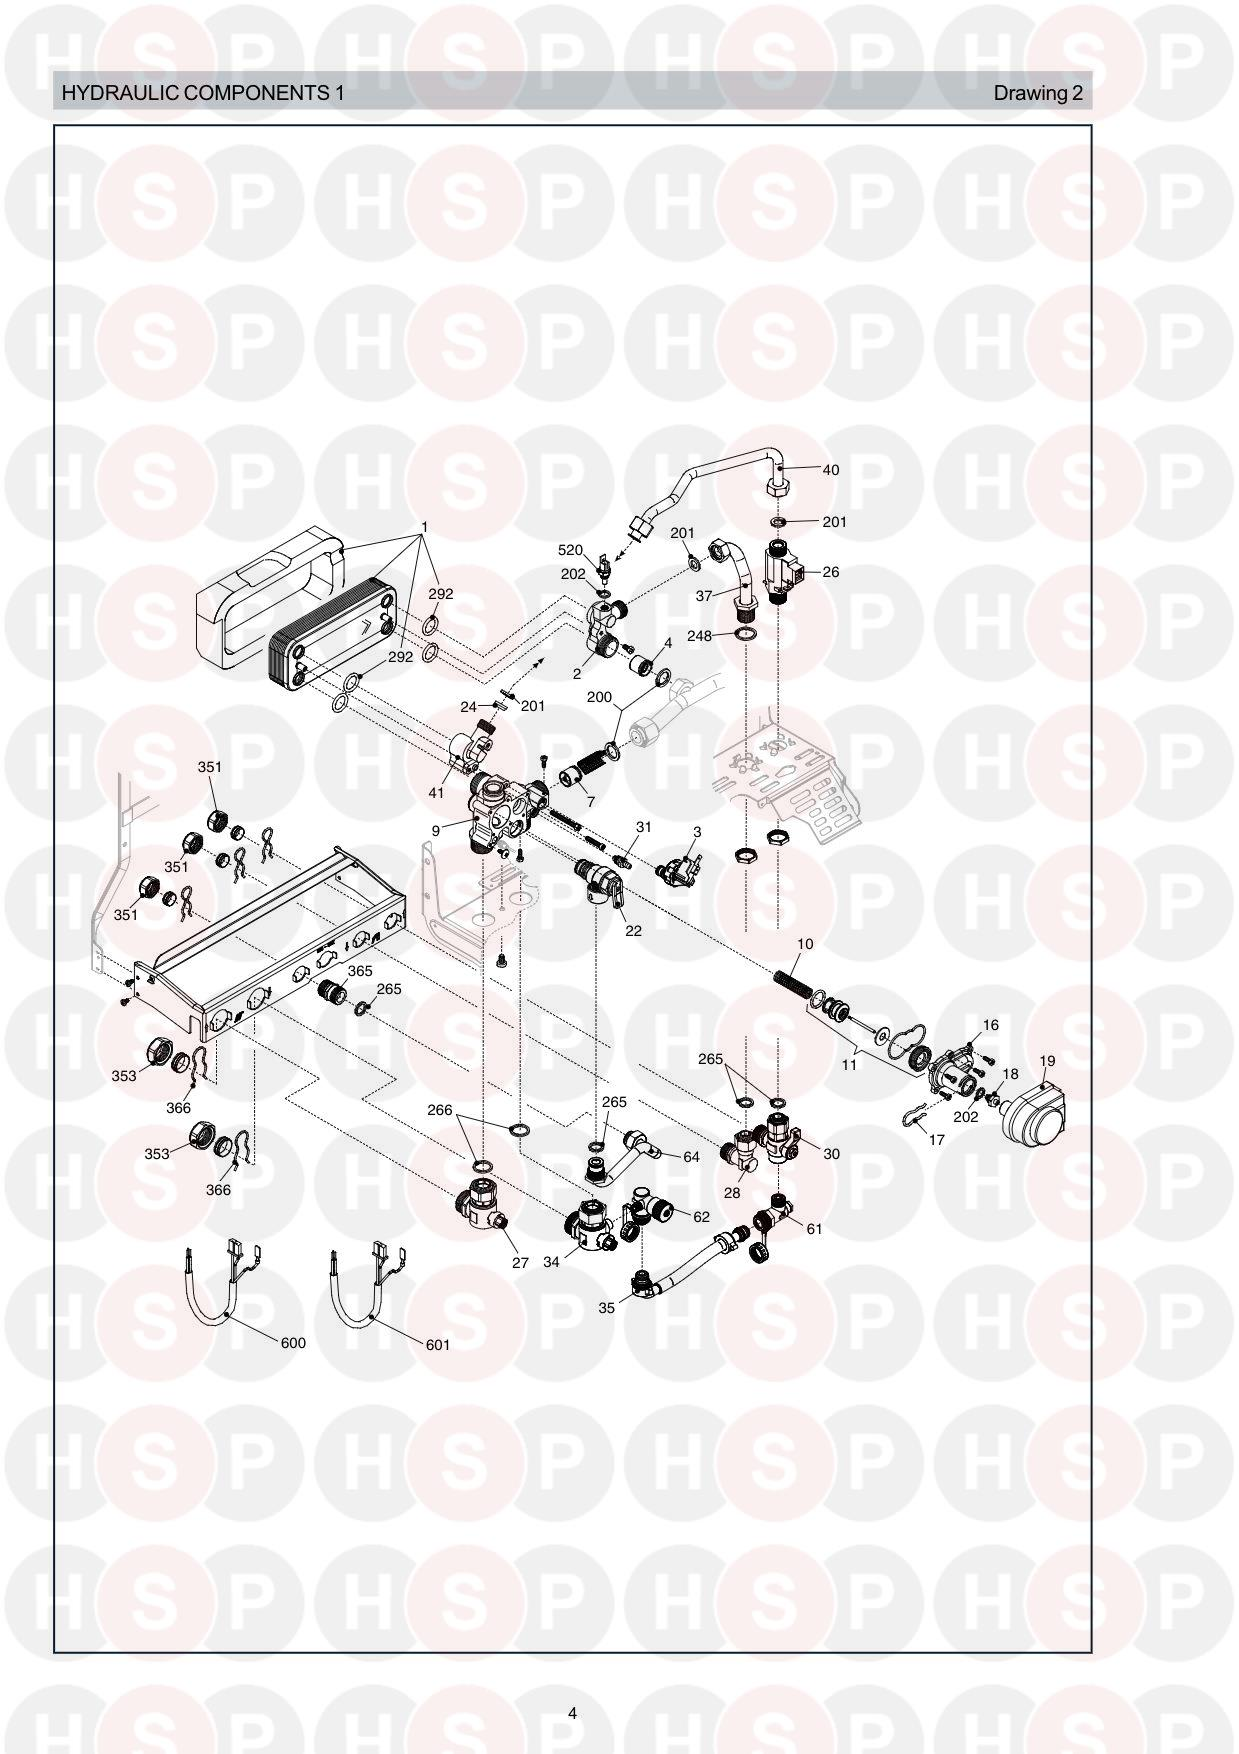 Hydraulics 1 diagram for Vokera Syntesi 35 Rev 6 (09/07)